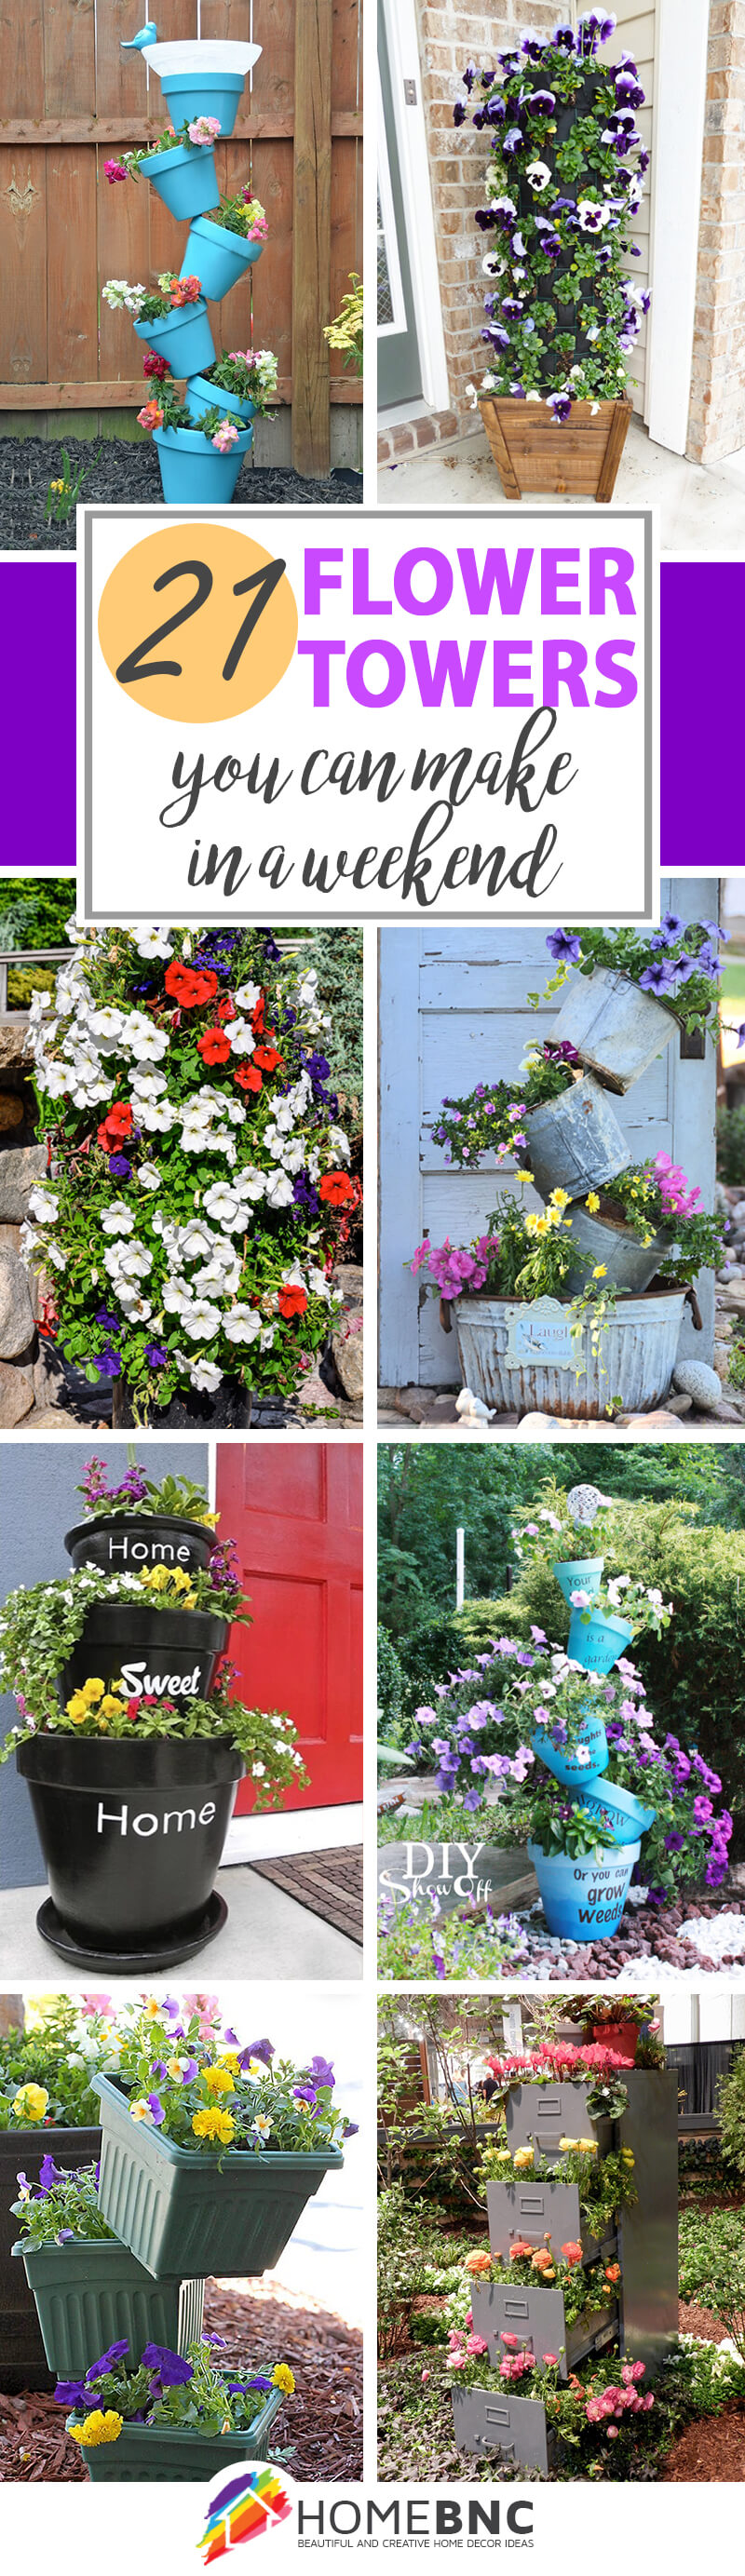 DIY Flower Tower Ideas